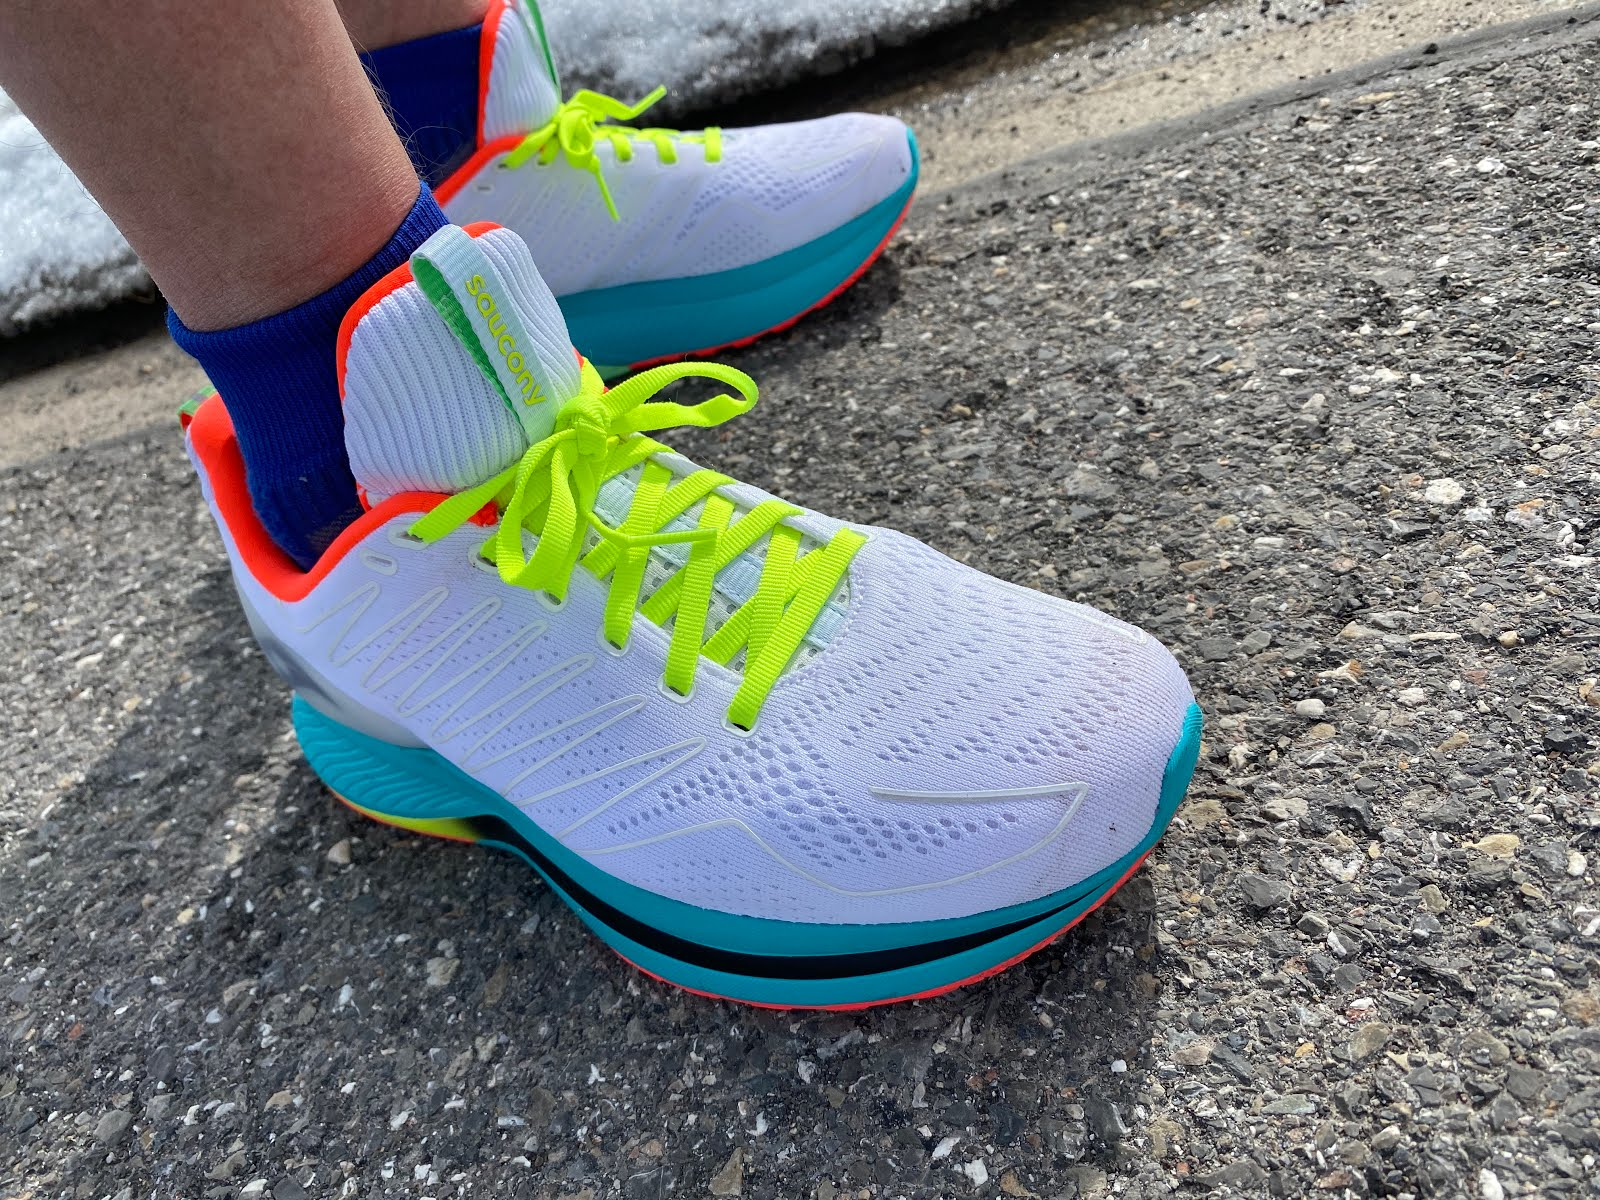 Road Trail Run Saucony Endorphin Shift Max Cushion Daily Trainer 1st Run Review Shoe Details And Comparisons